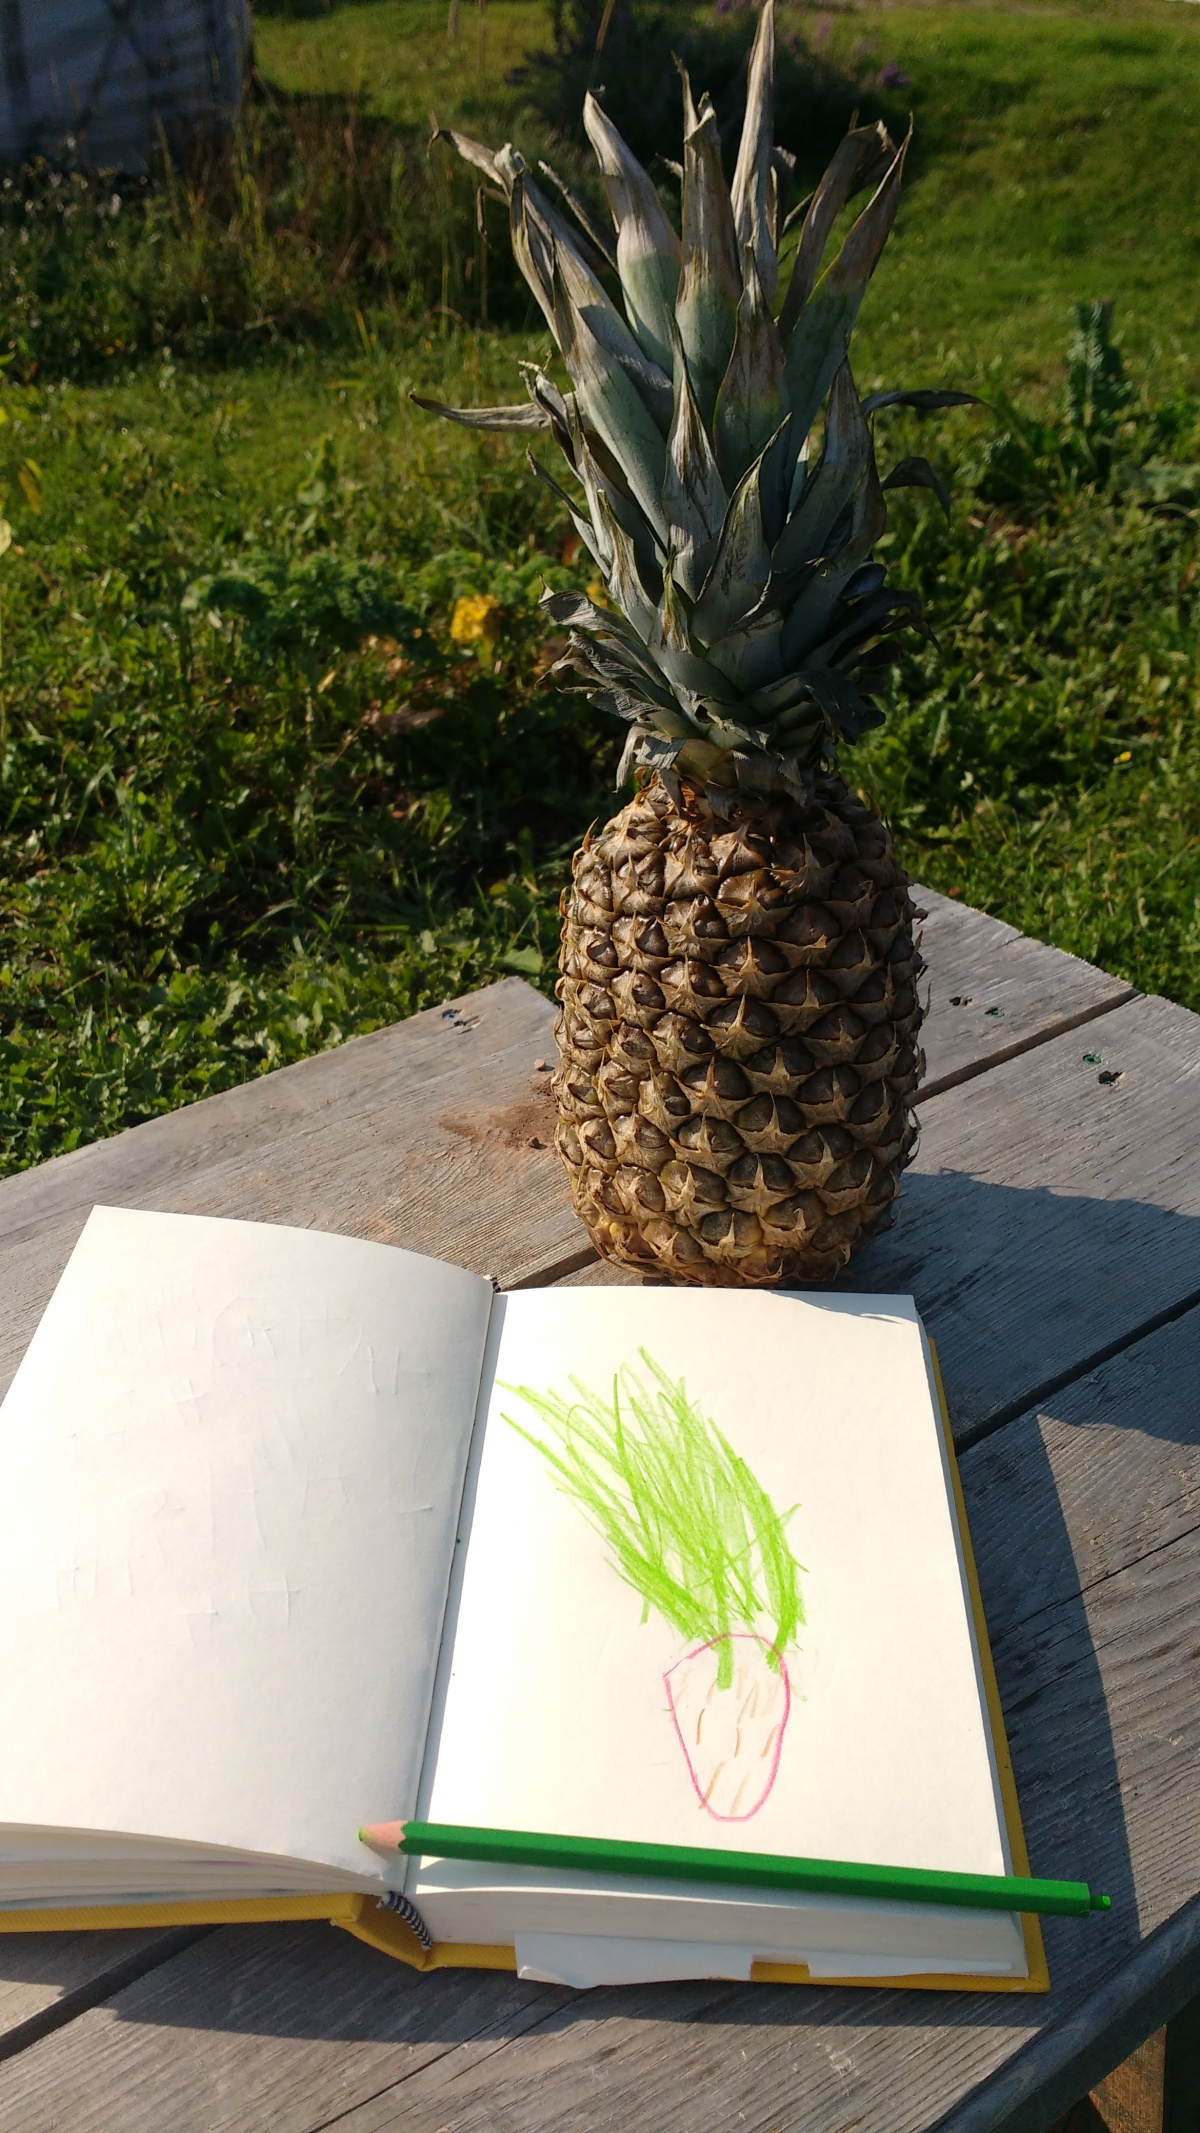 A comme ananas - Semaine 1